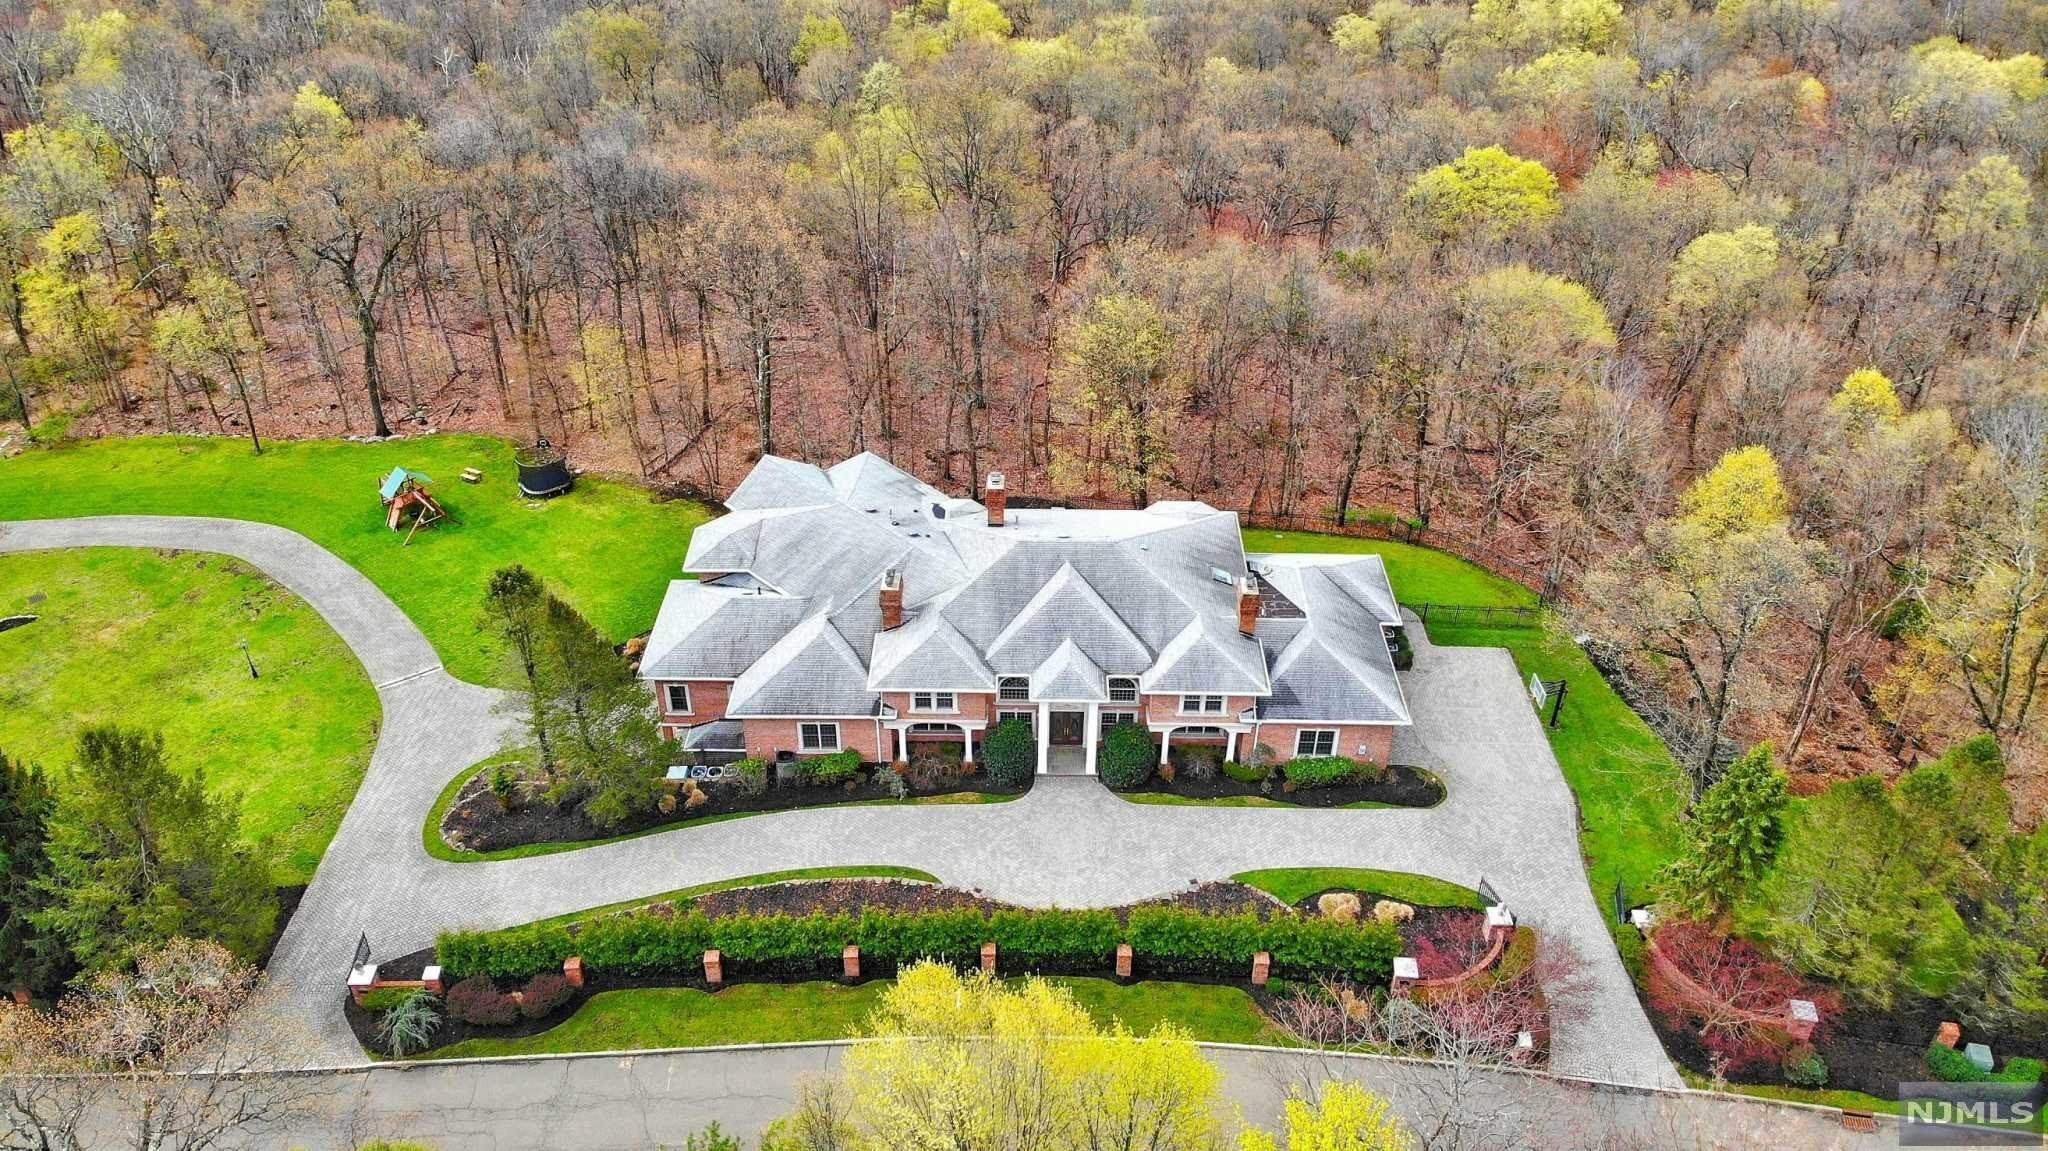 2. Single Family Home for Sale at 14 Shinnecock Trail Franklin Lakes, New Jersey, 07417 United States